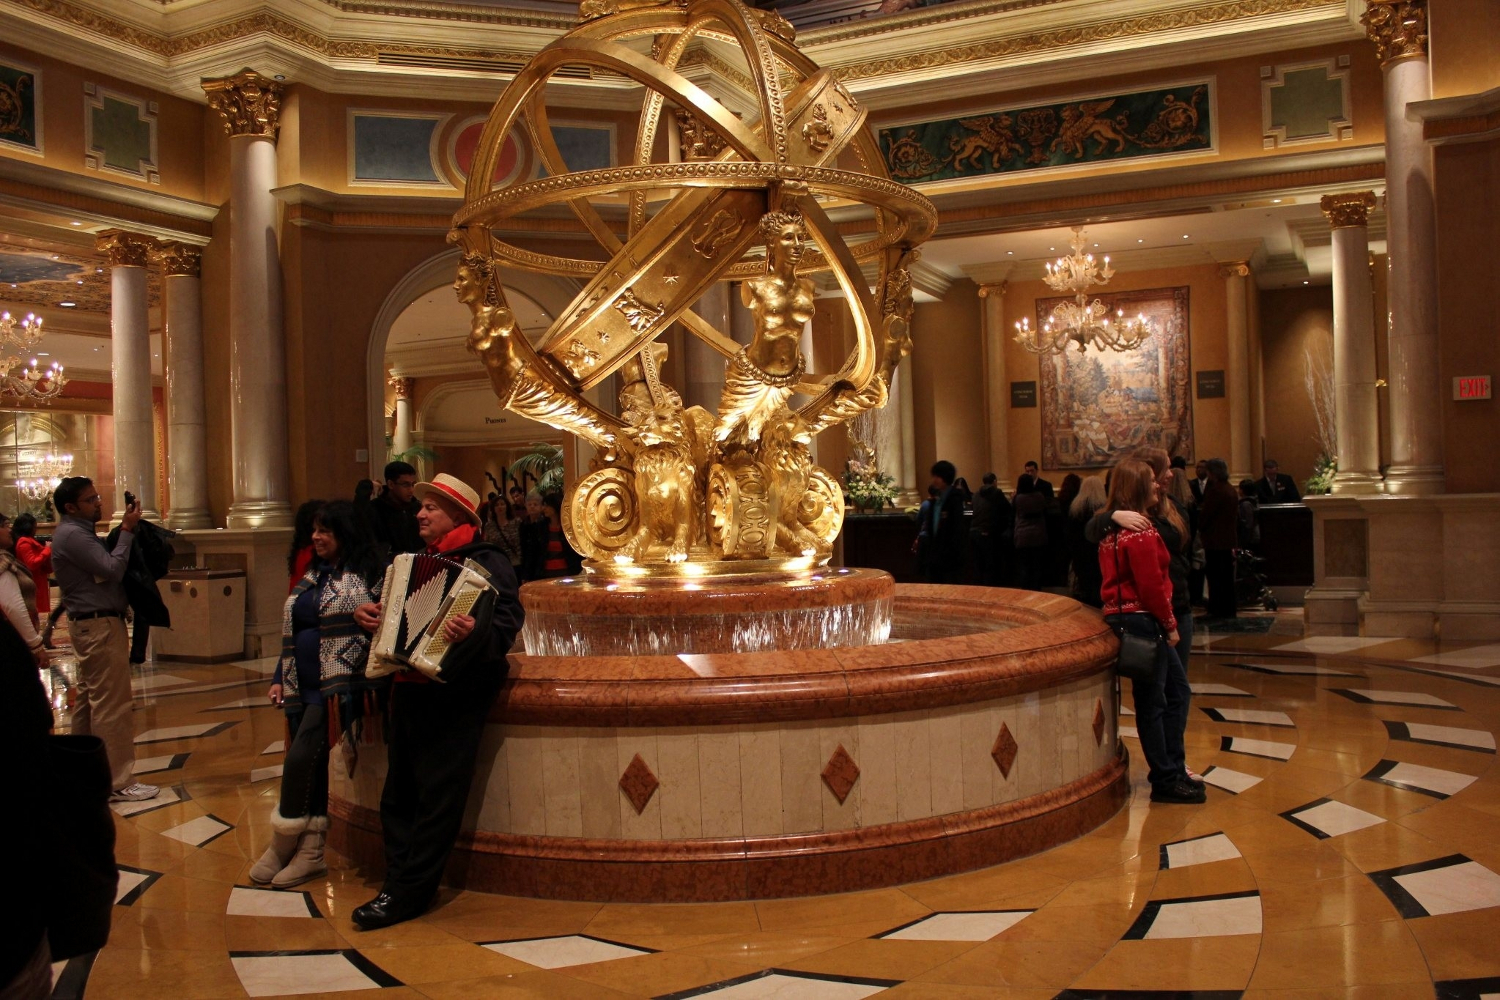 Splendid Fountain at The Venetian Resort Hotel and Casino in Las Vegas